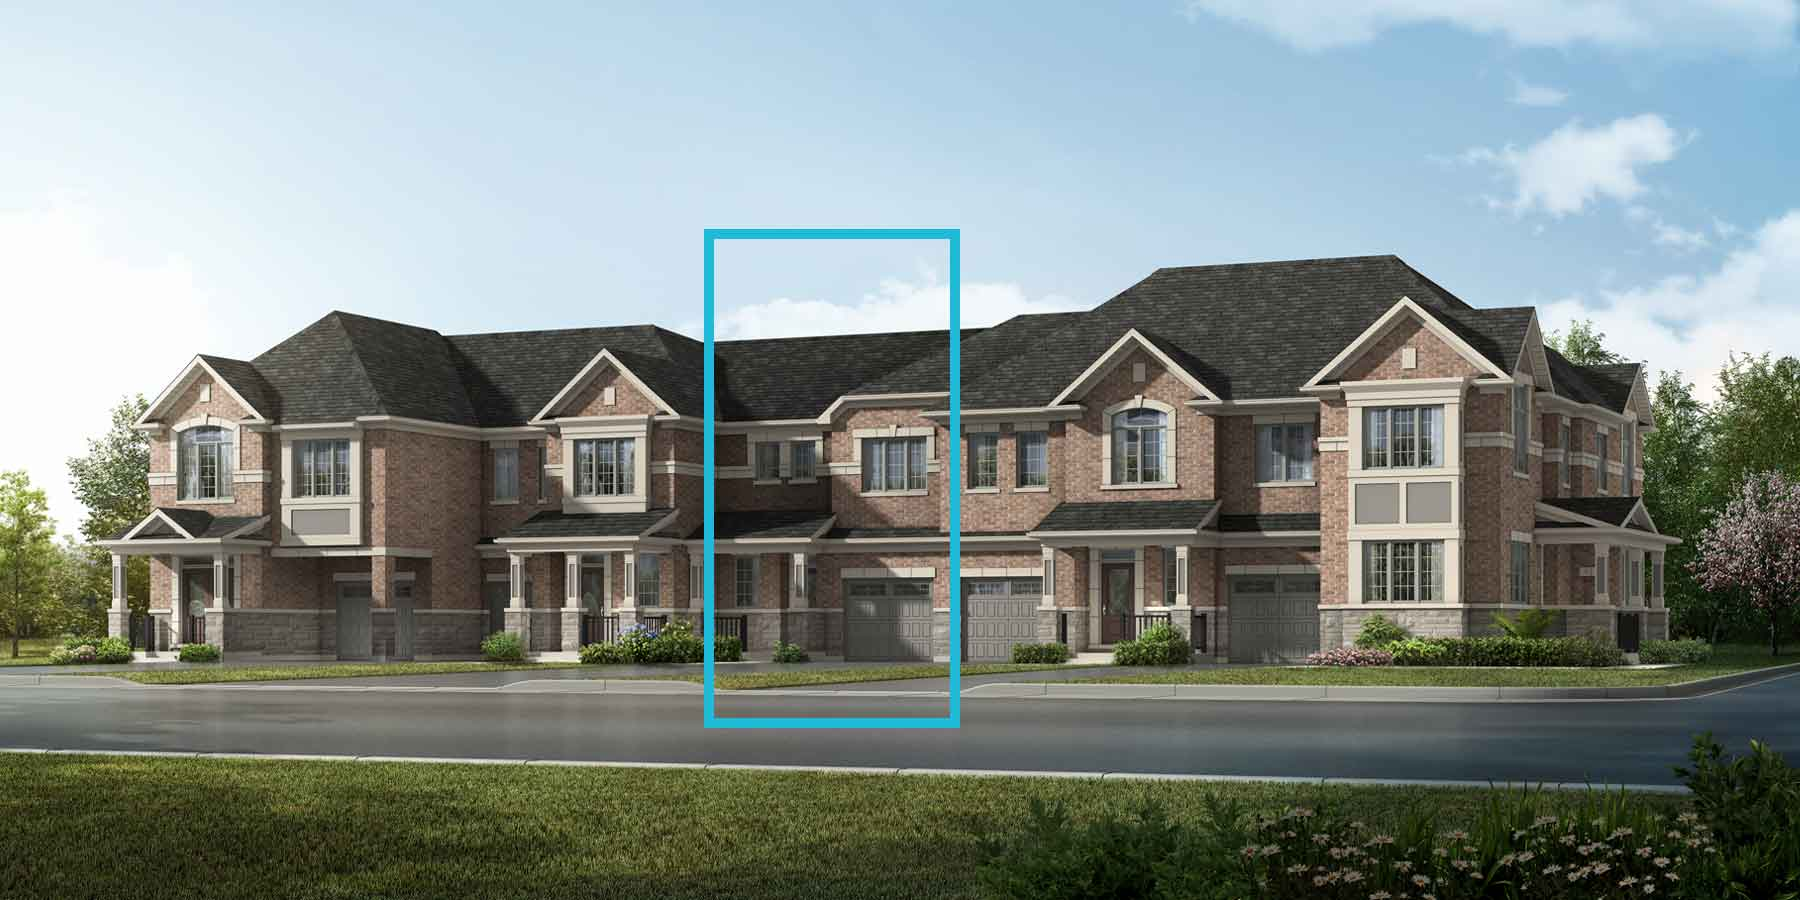 Jade Plan TownHomes at Springwater in Markham Ontario by Mattamy Homes